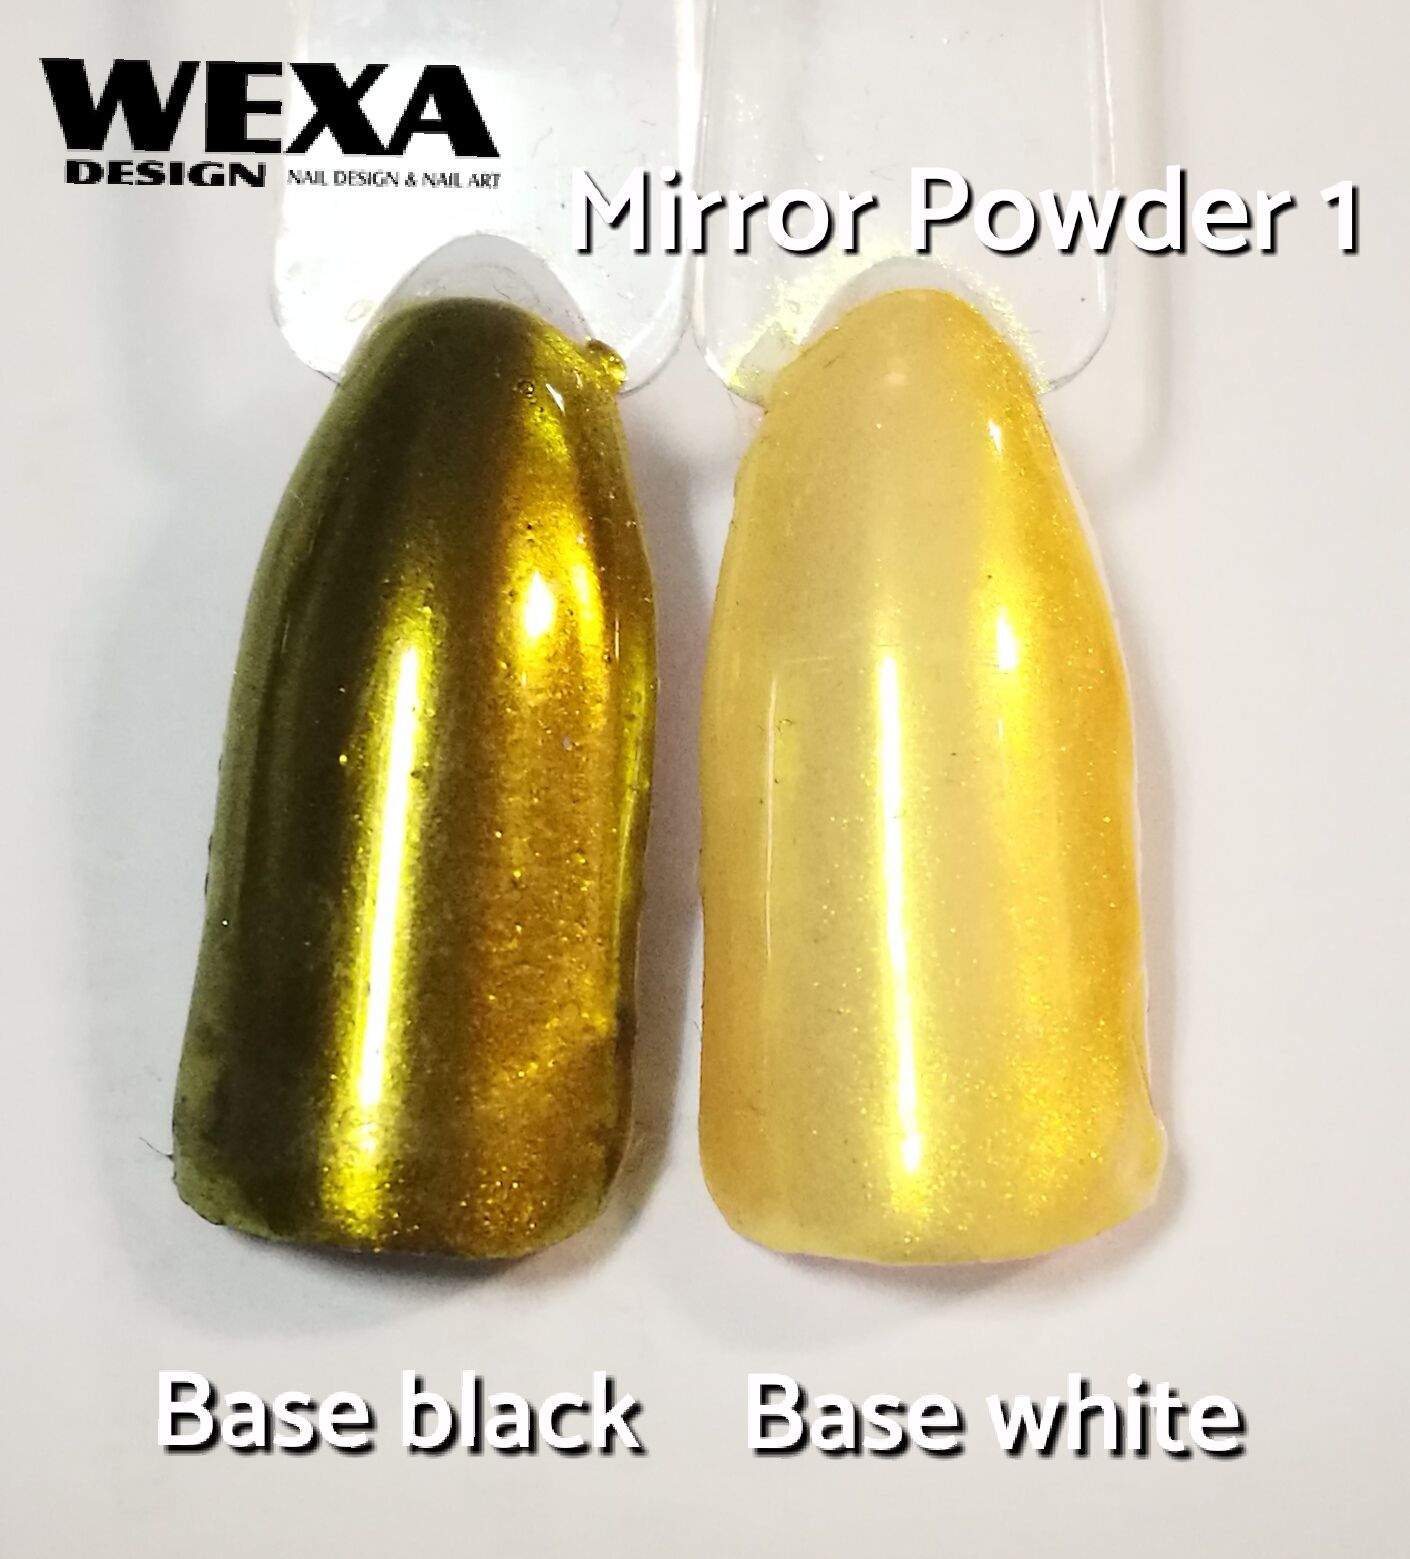 Mirror Powder 1